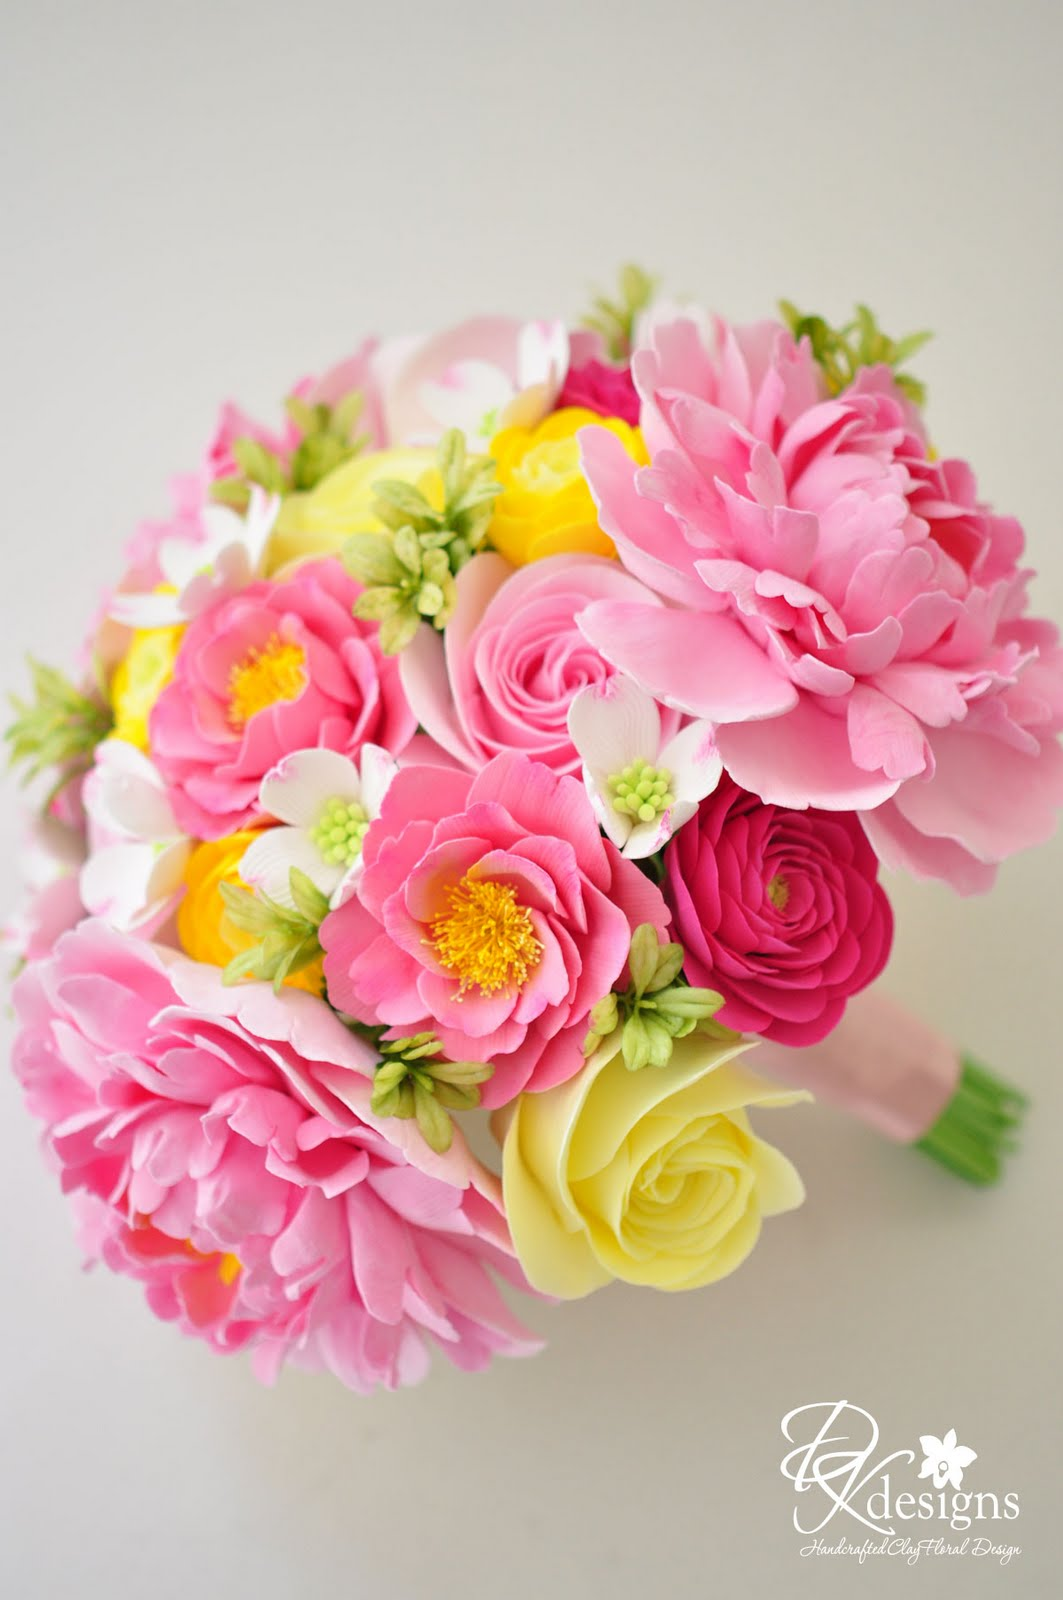 dk designs pink and yellow wedding bouquet for a southern wedding yellow wedding bouquet wedding ideas 1063x1600